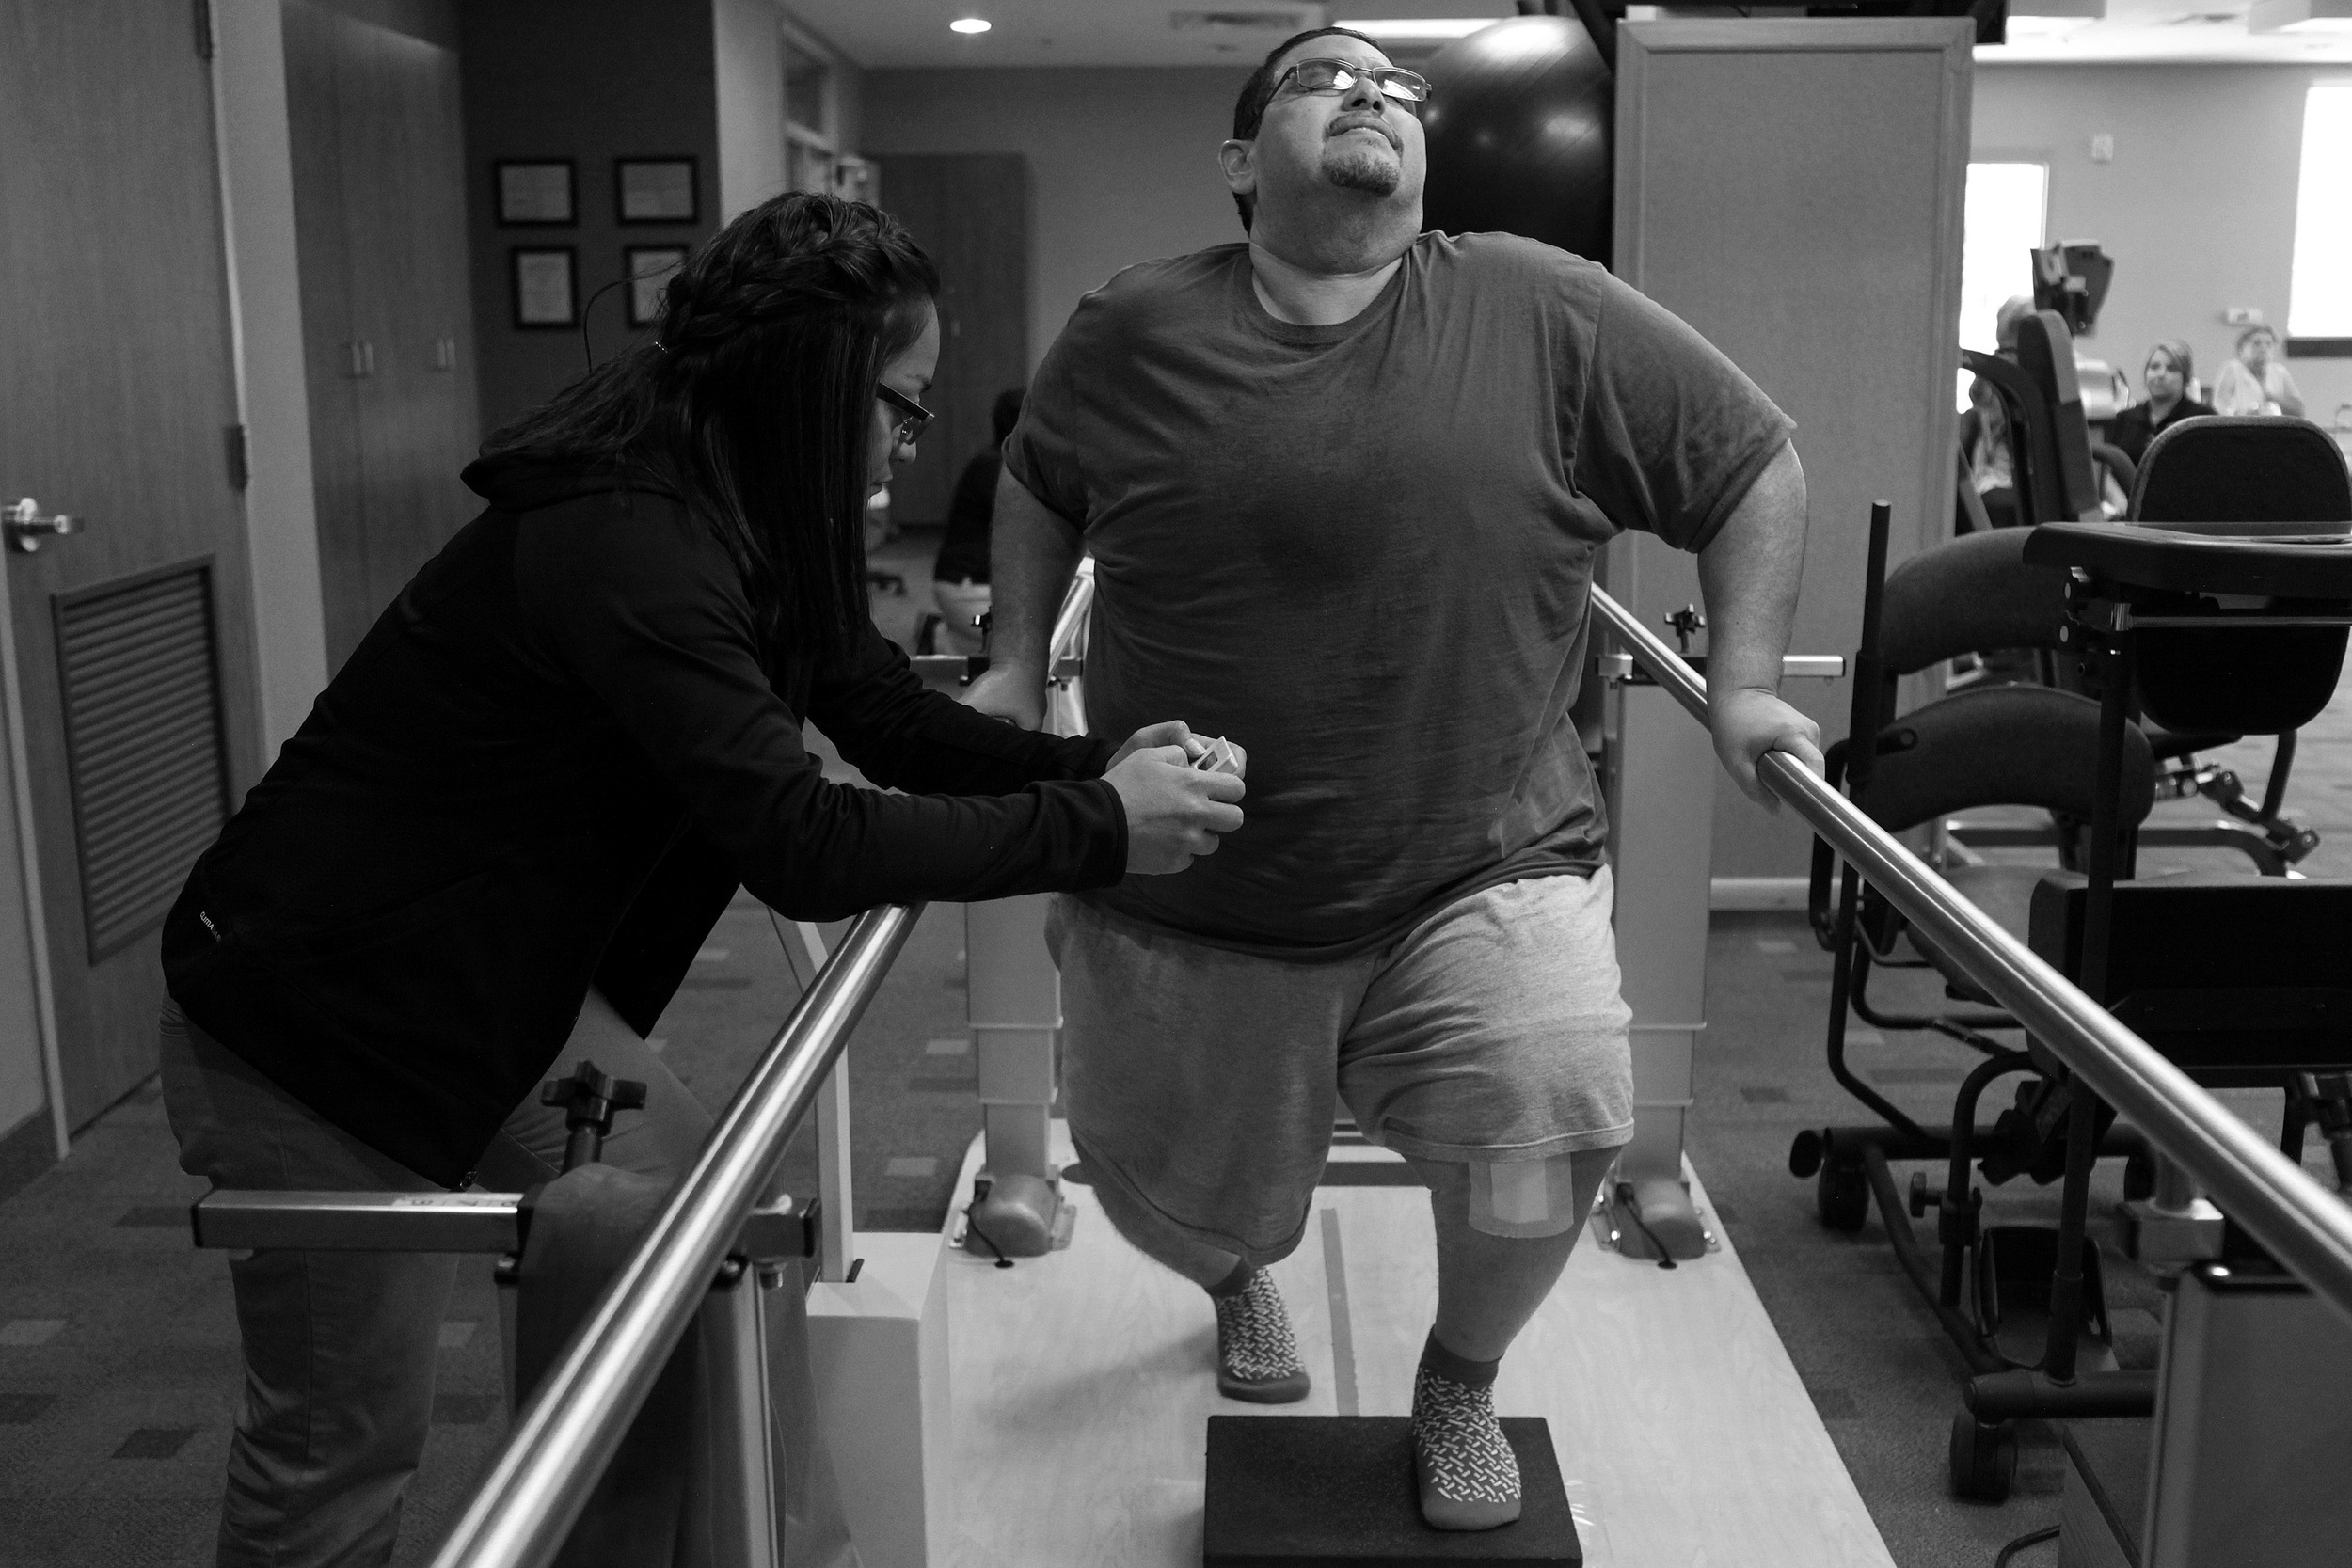 Hector Garciaundergoes physical therapy after his first knee replacement operation. © Lisa Krantz/San Antonio Express-News/ZUMA Press